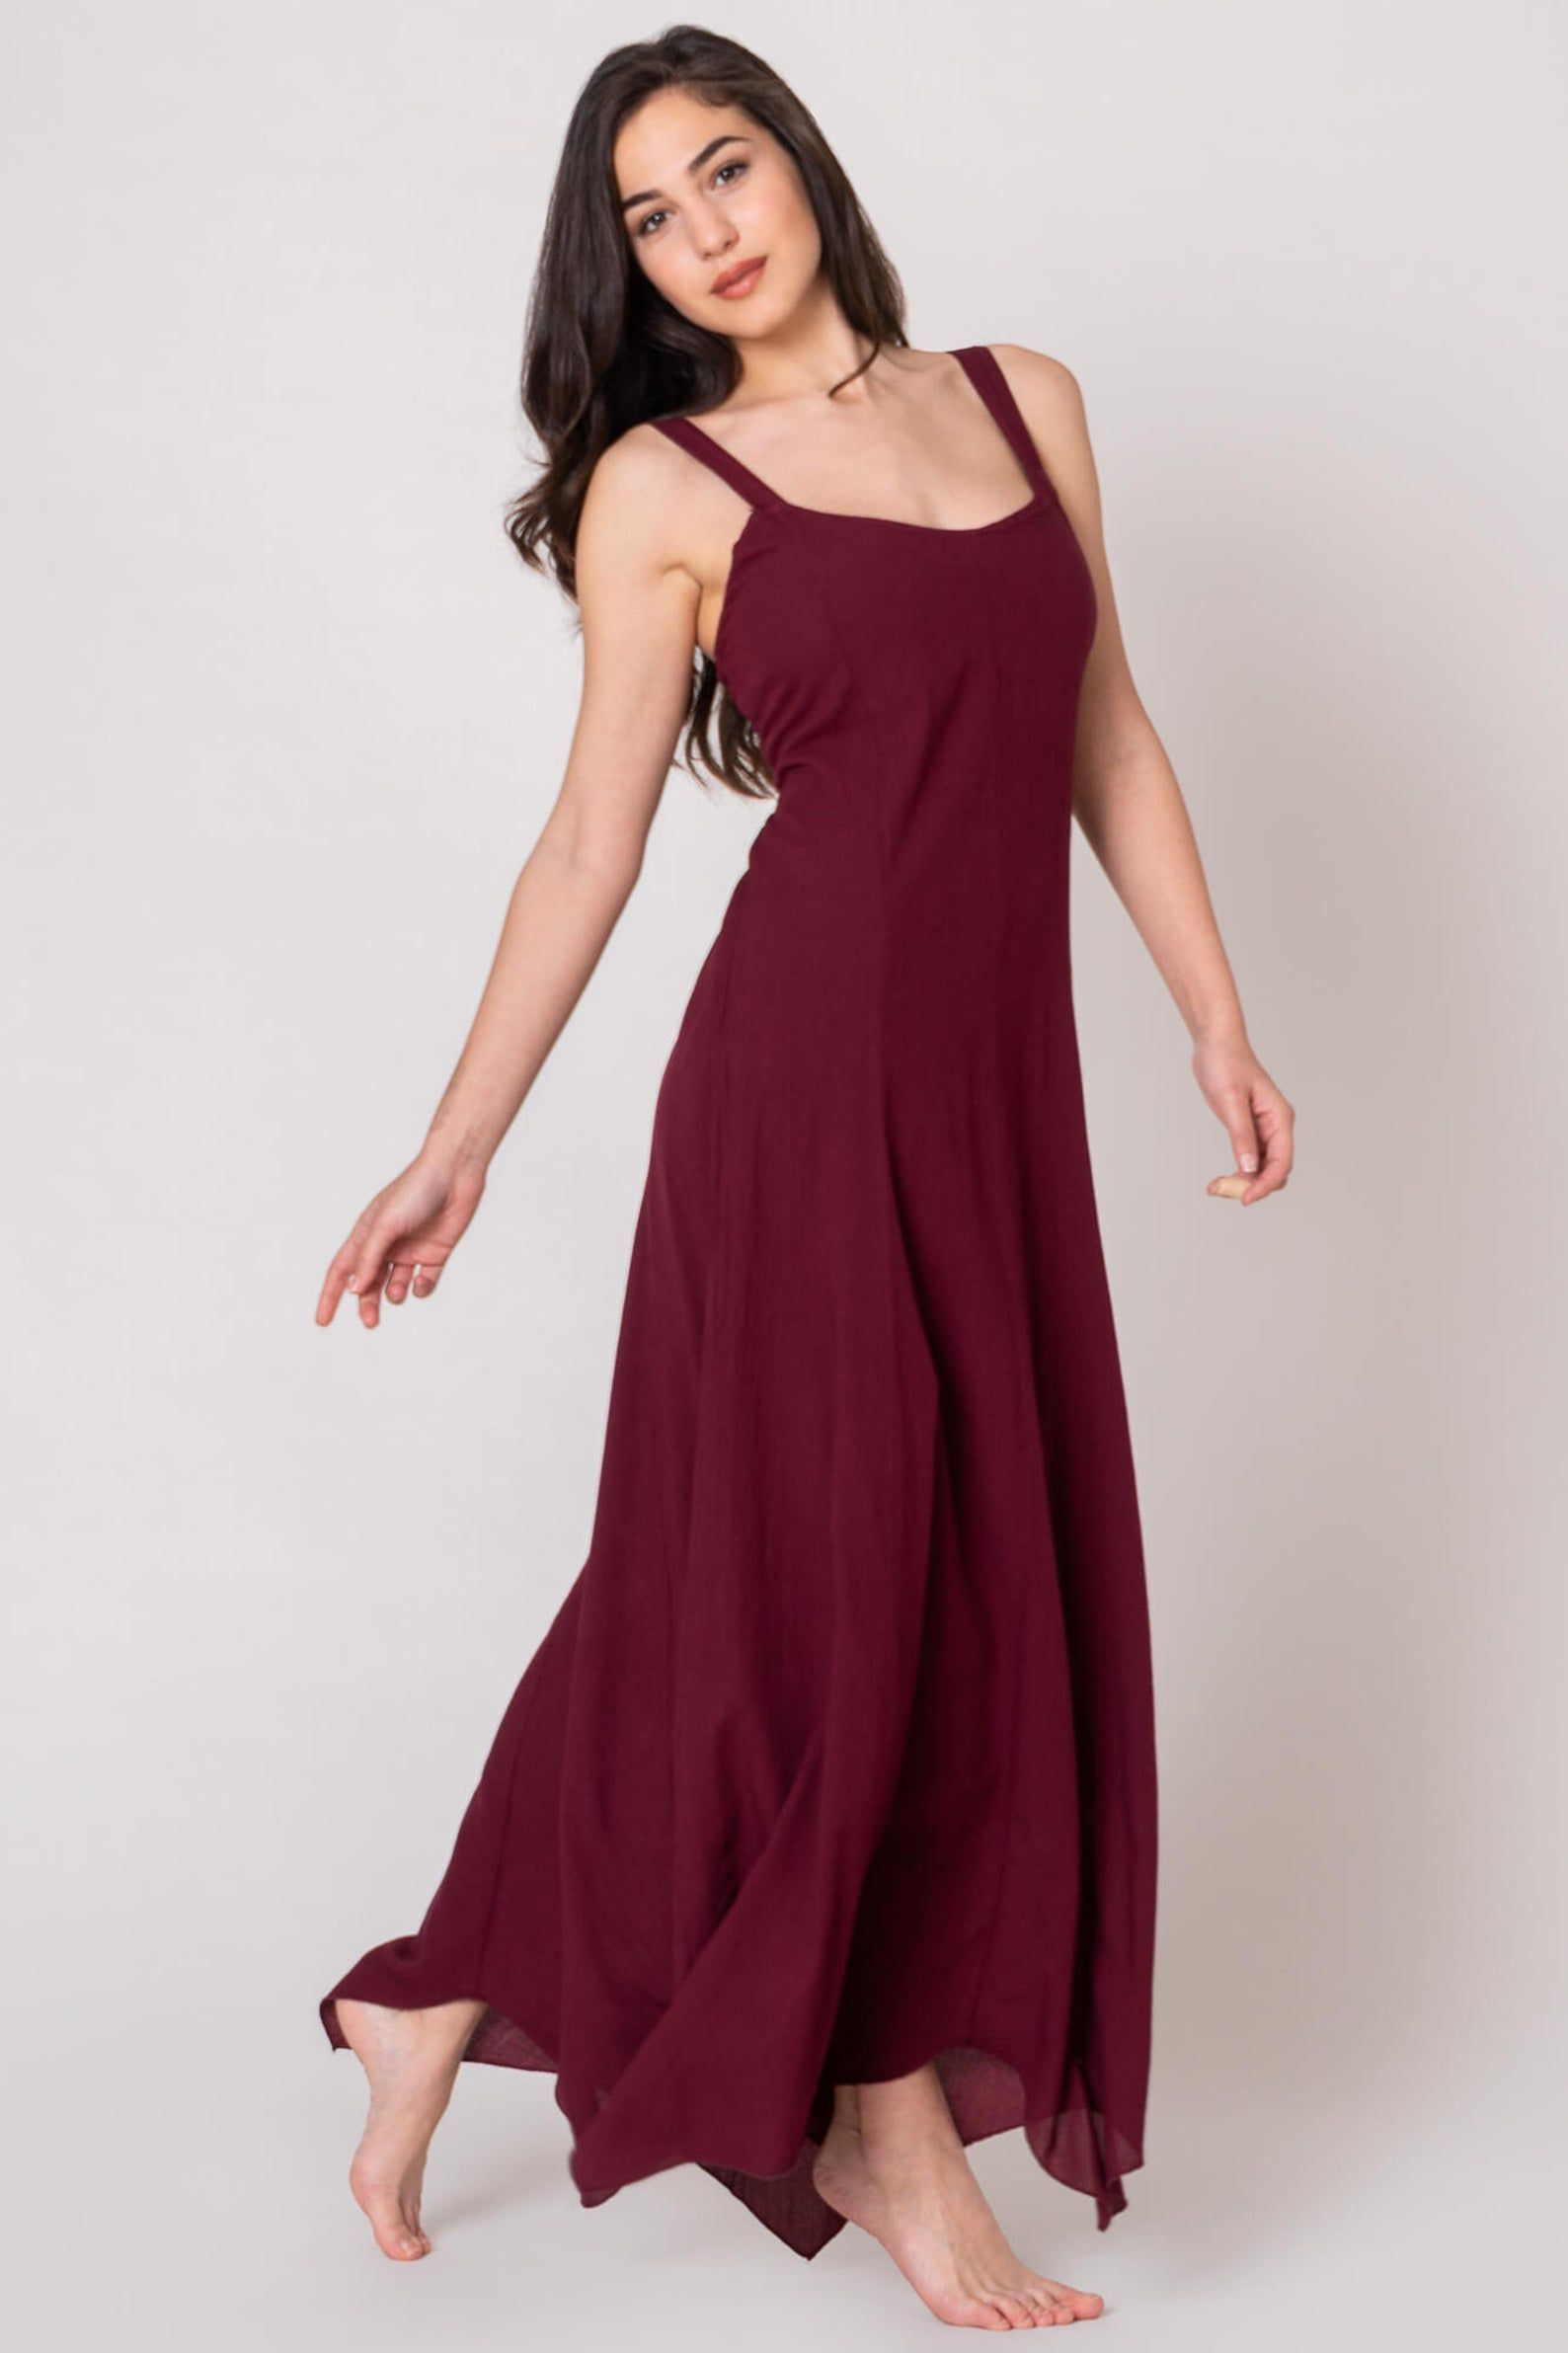 Most of our boho clothes come in at least 3 different color options so